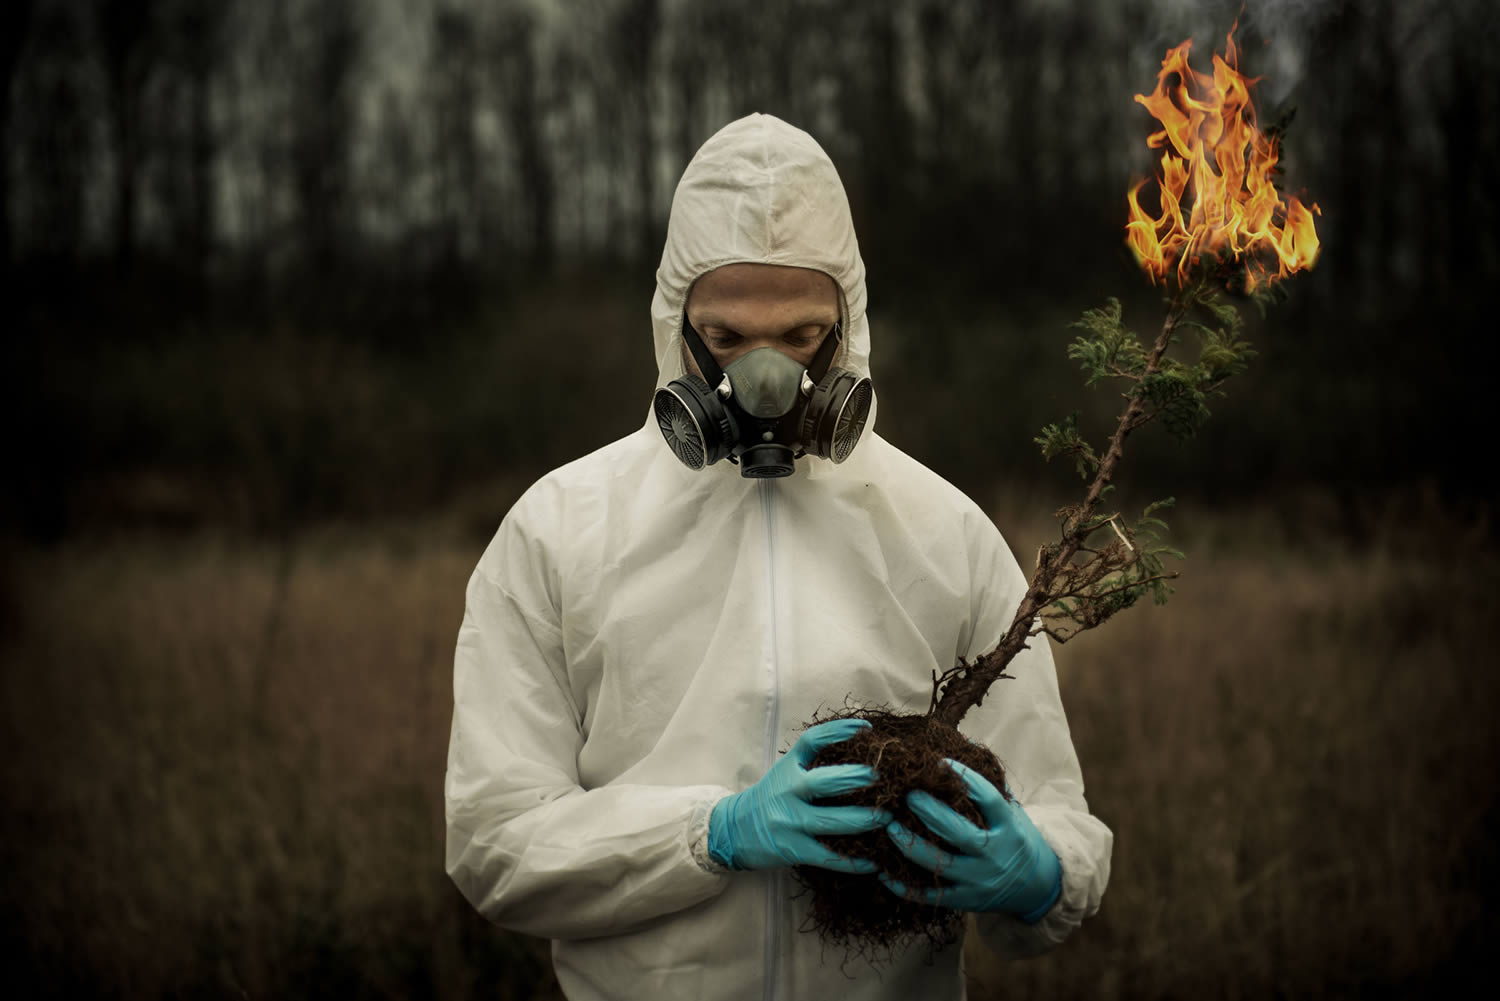 sourearth, man in hazmat suit holding a burning tree